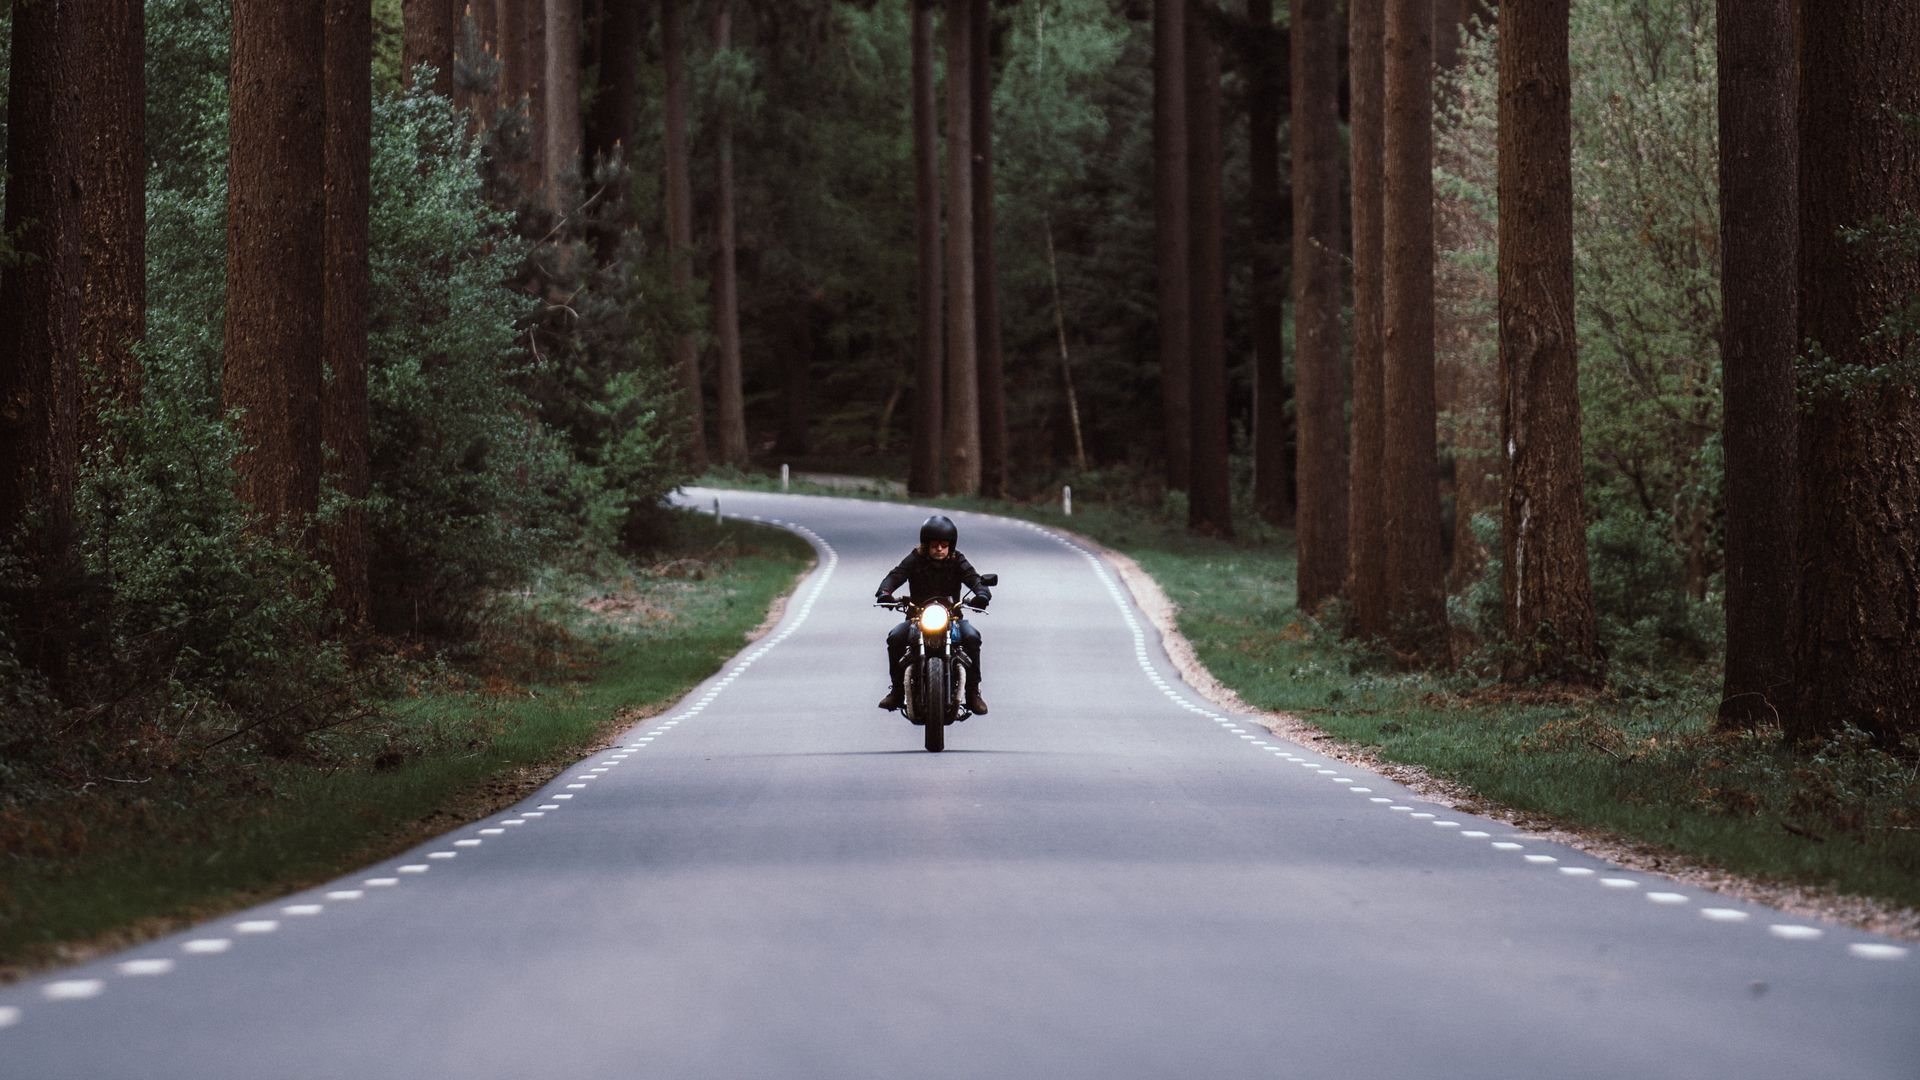 Motorcyclist, Motorcycle, Road Download Free HD Wallpapers